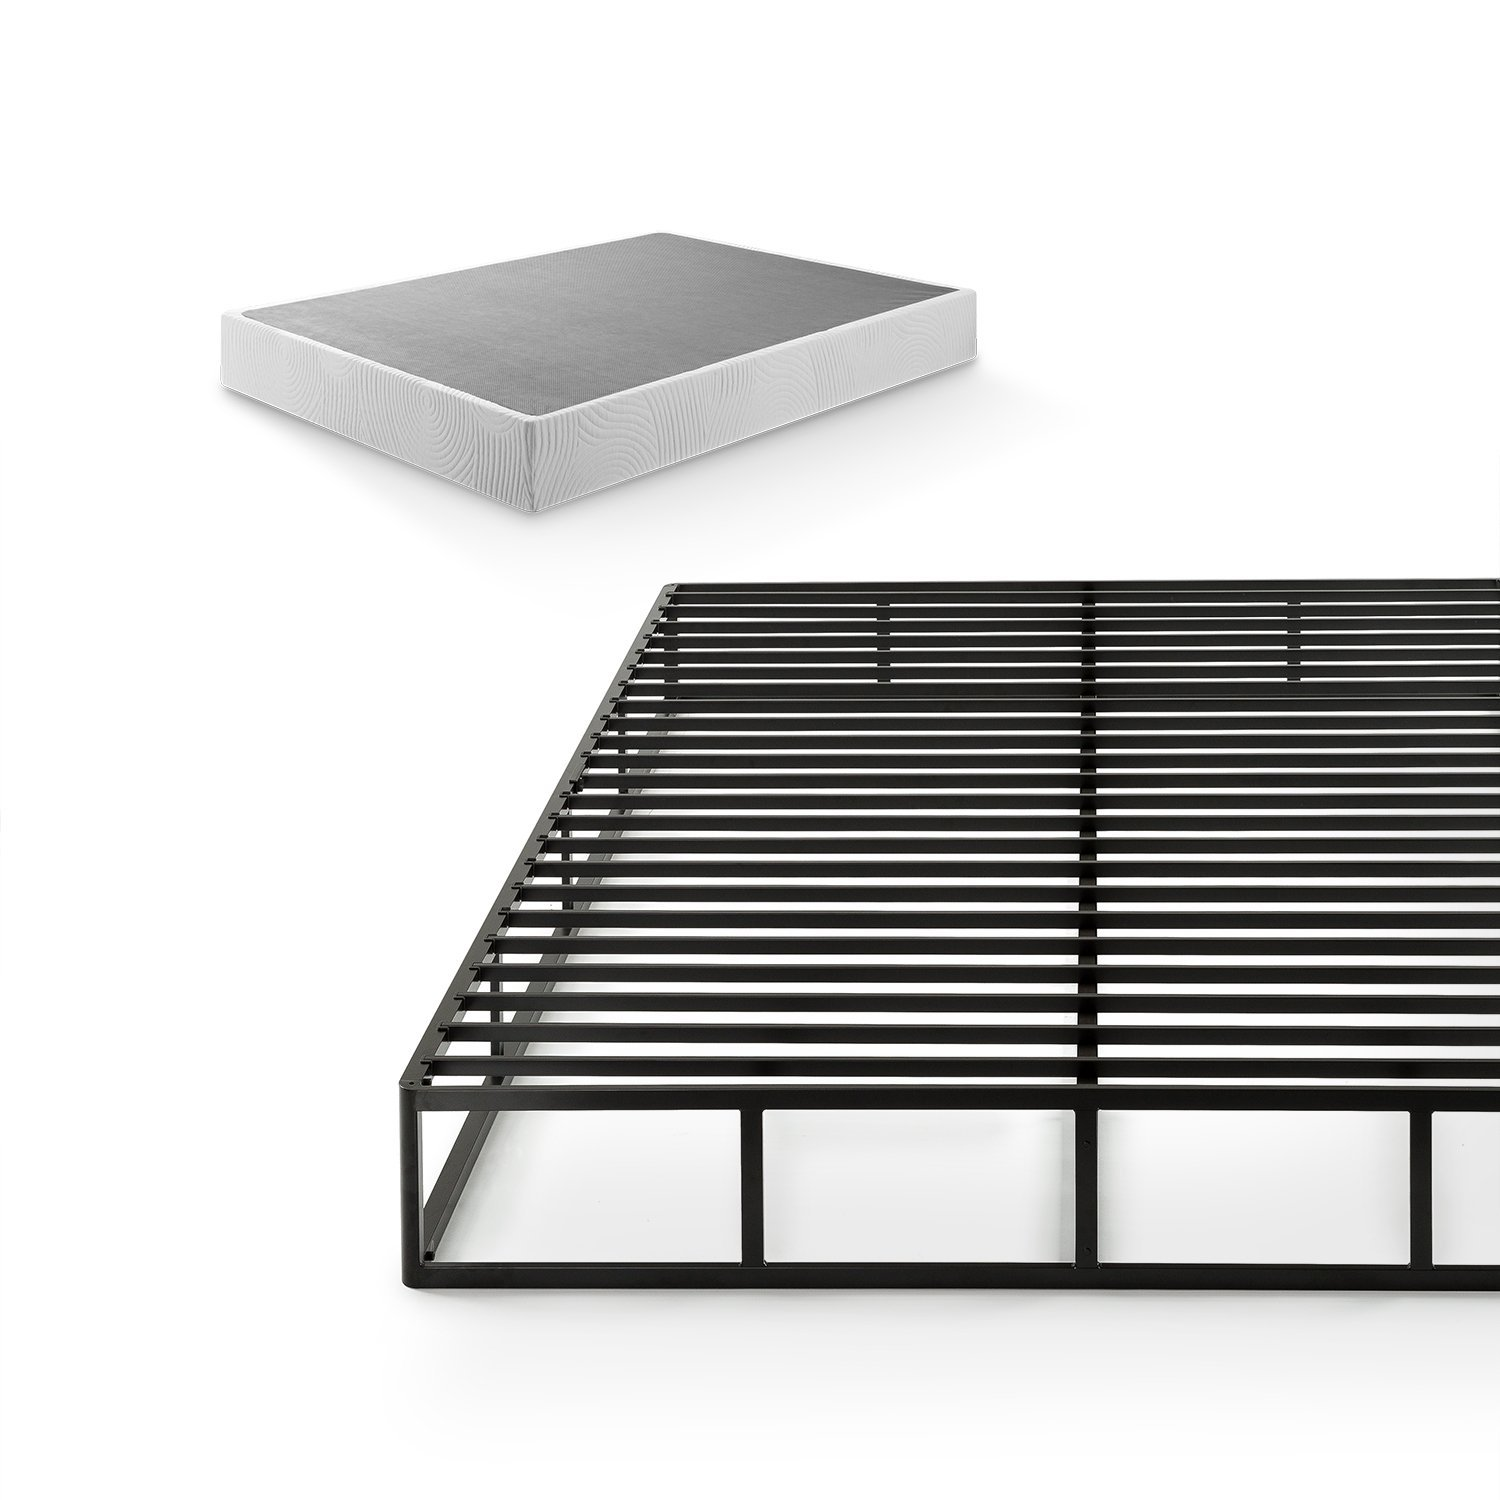 Zinus Victor 9 Inch Quick Lock High Profile Smart Box Spring / Mattress Foundation / Strong Steel Structure / Easy Assembly, Twin by Zinus